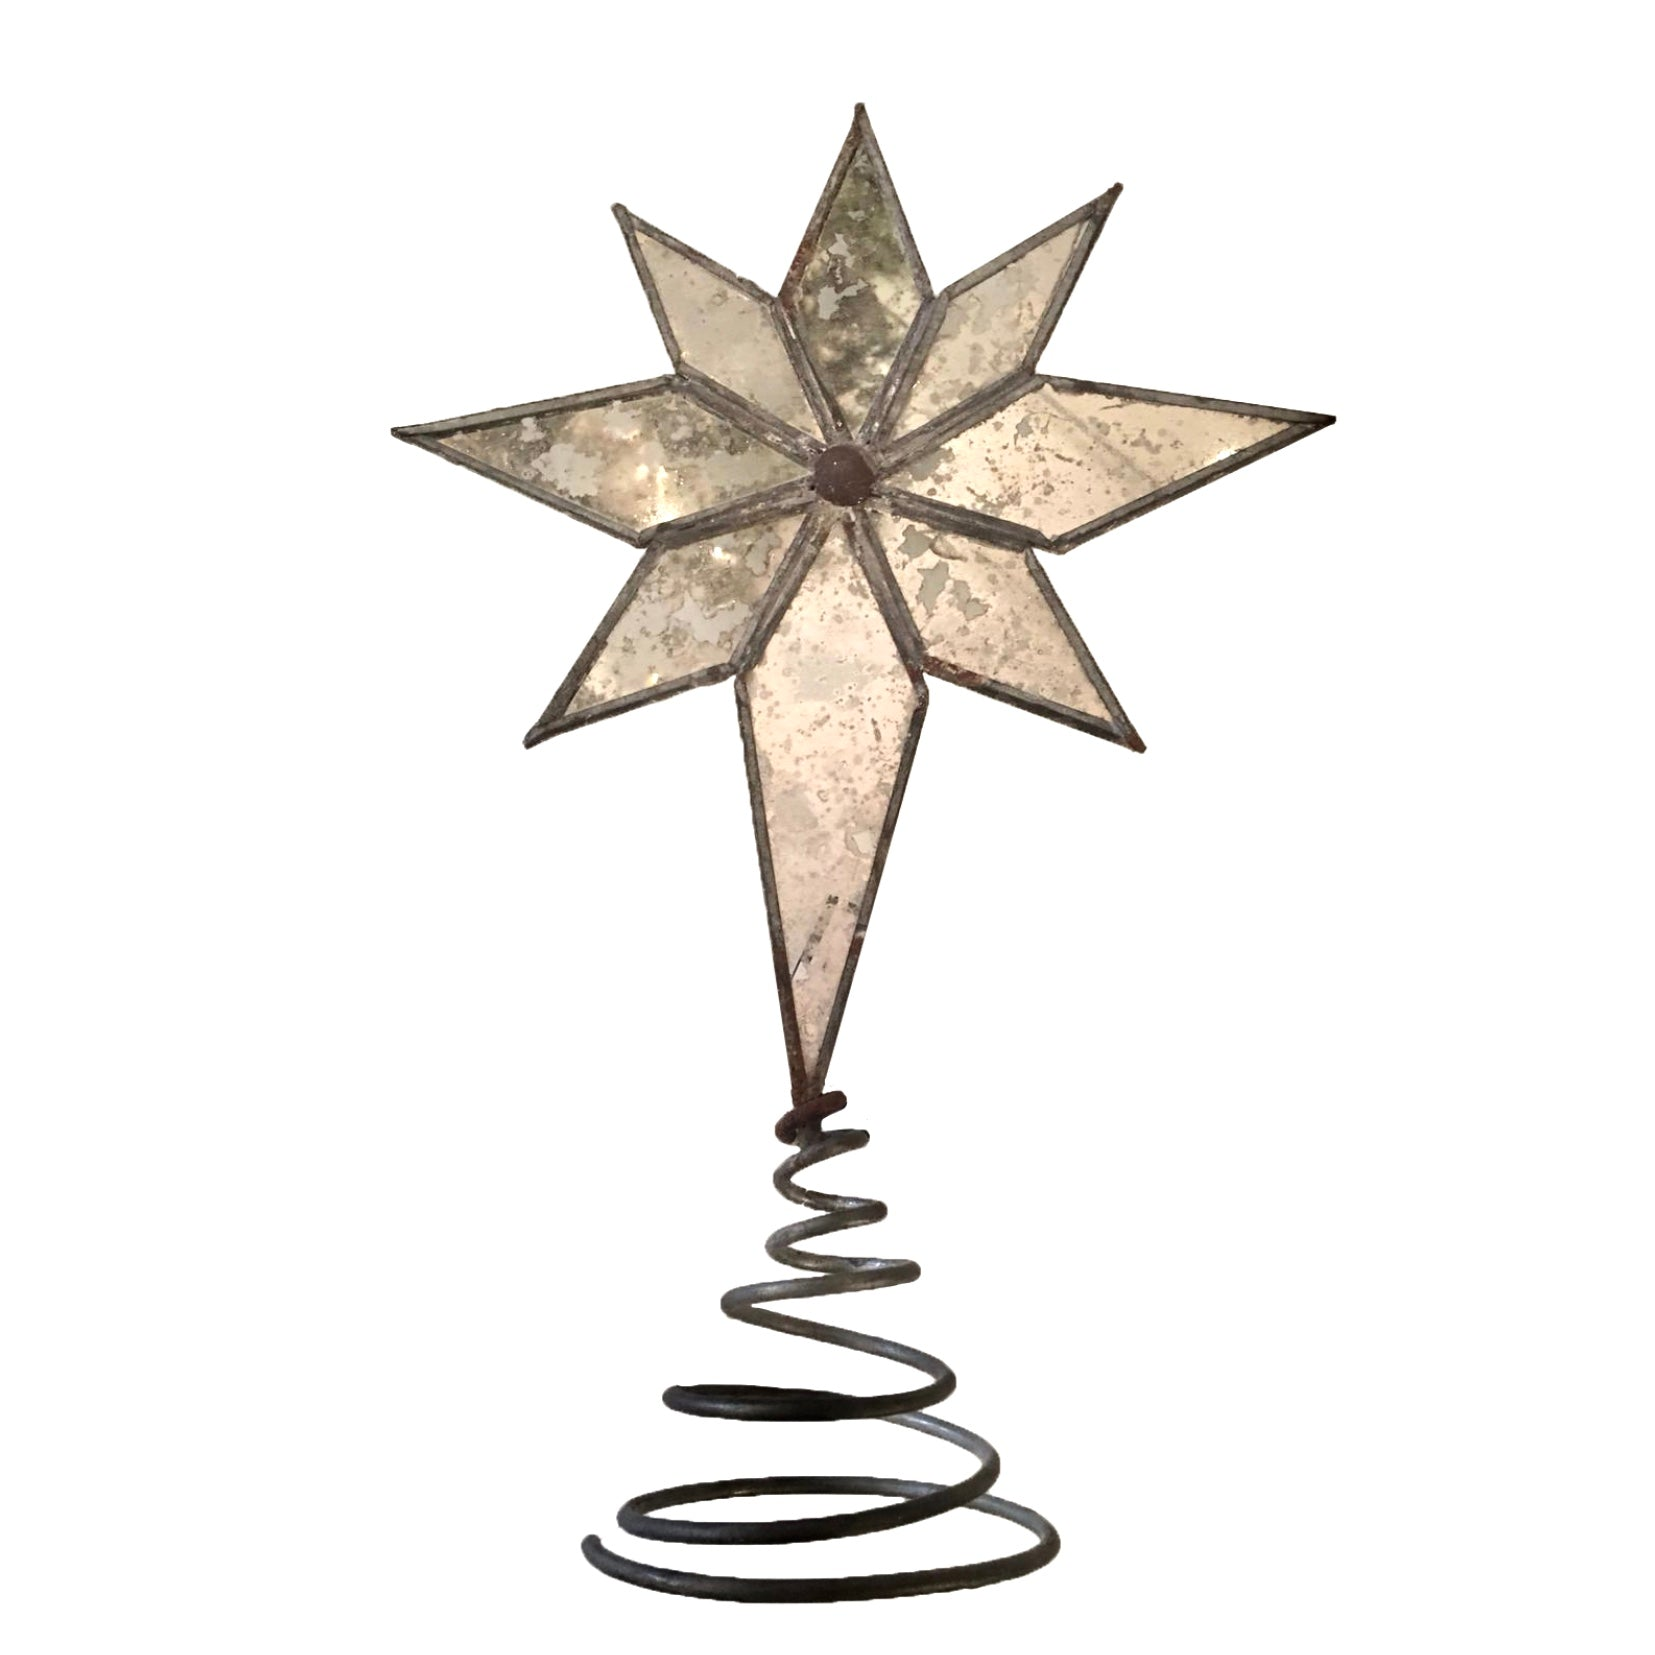 Mirrored Mottled Glass North Star Christmas Tree Topper